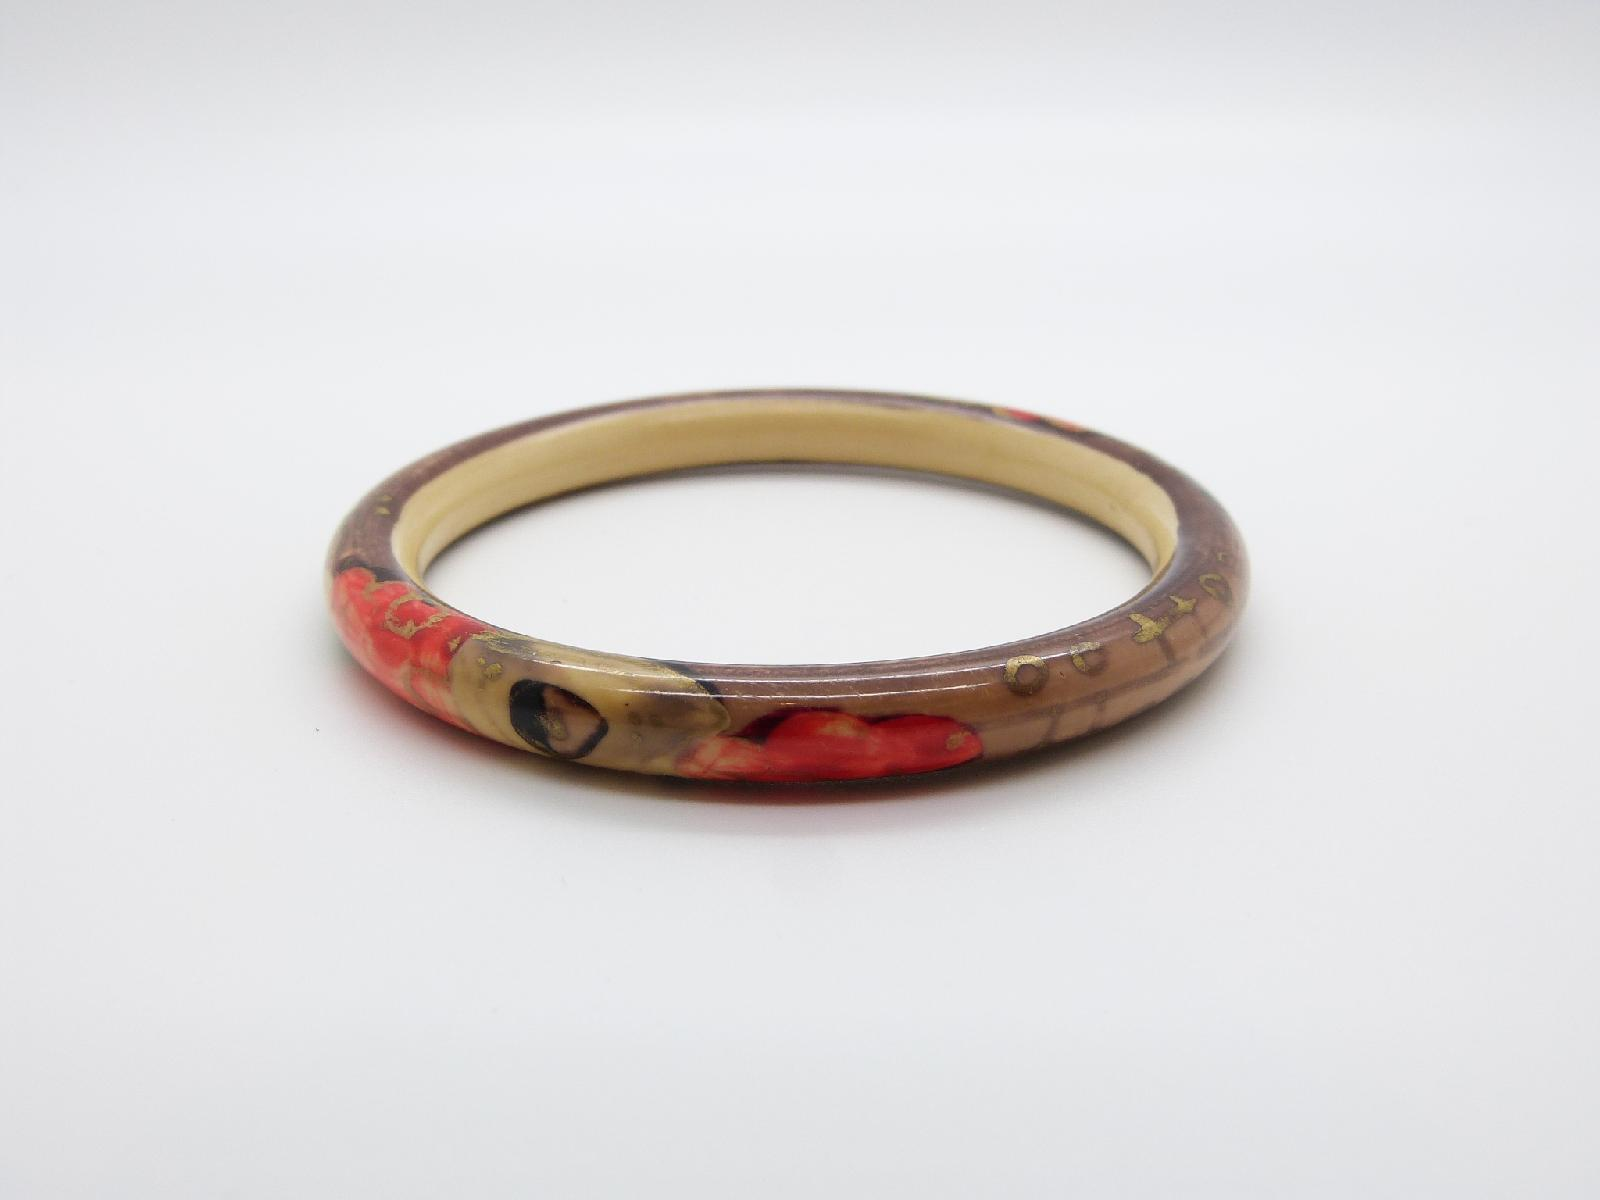 Vintage 30s Red Brown and Cream Floral Design Armlet Flapper Bangle